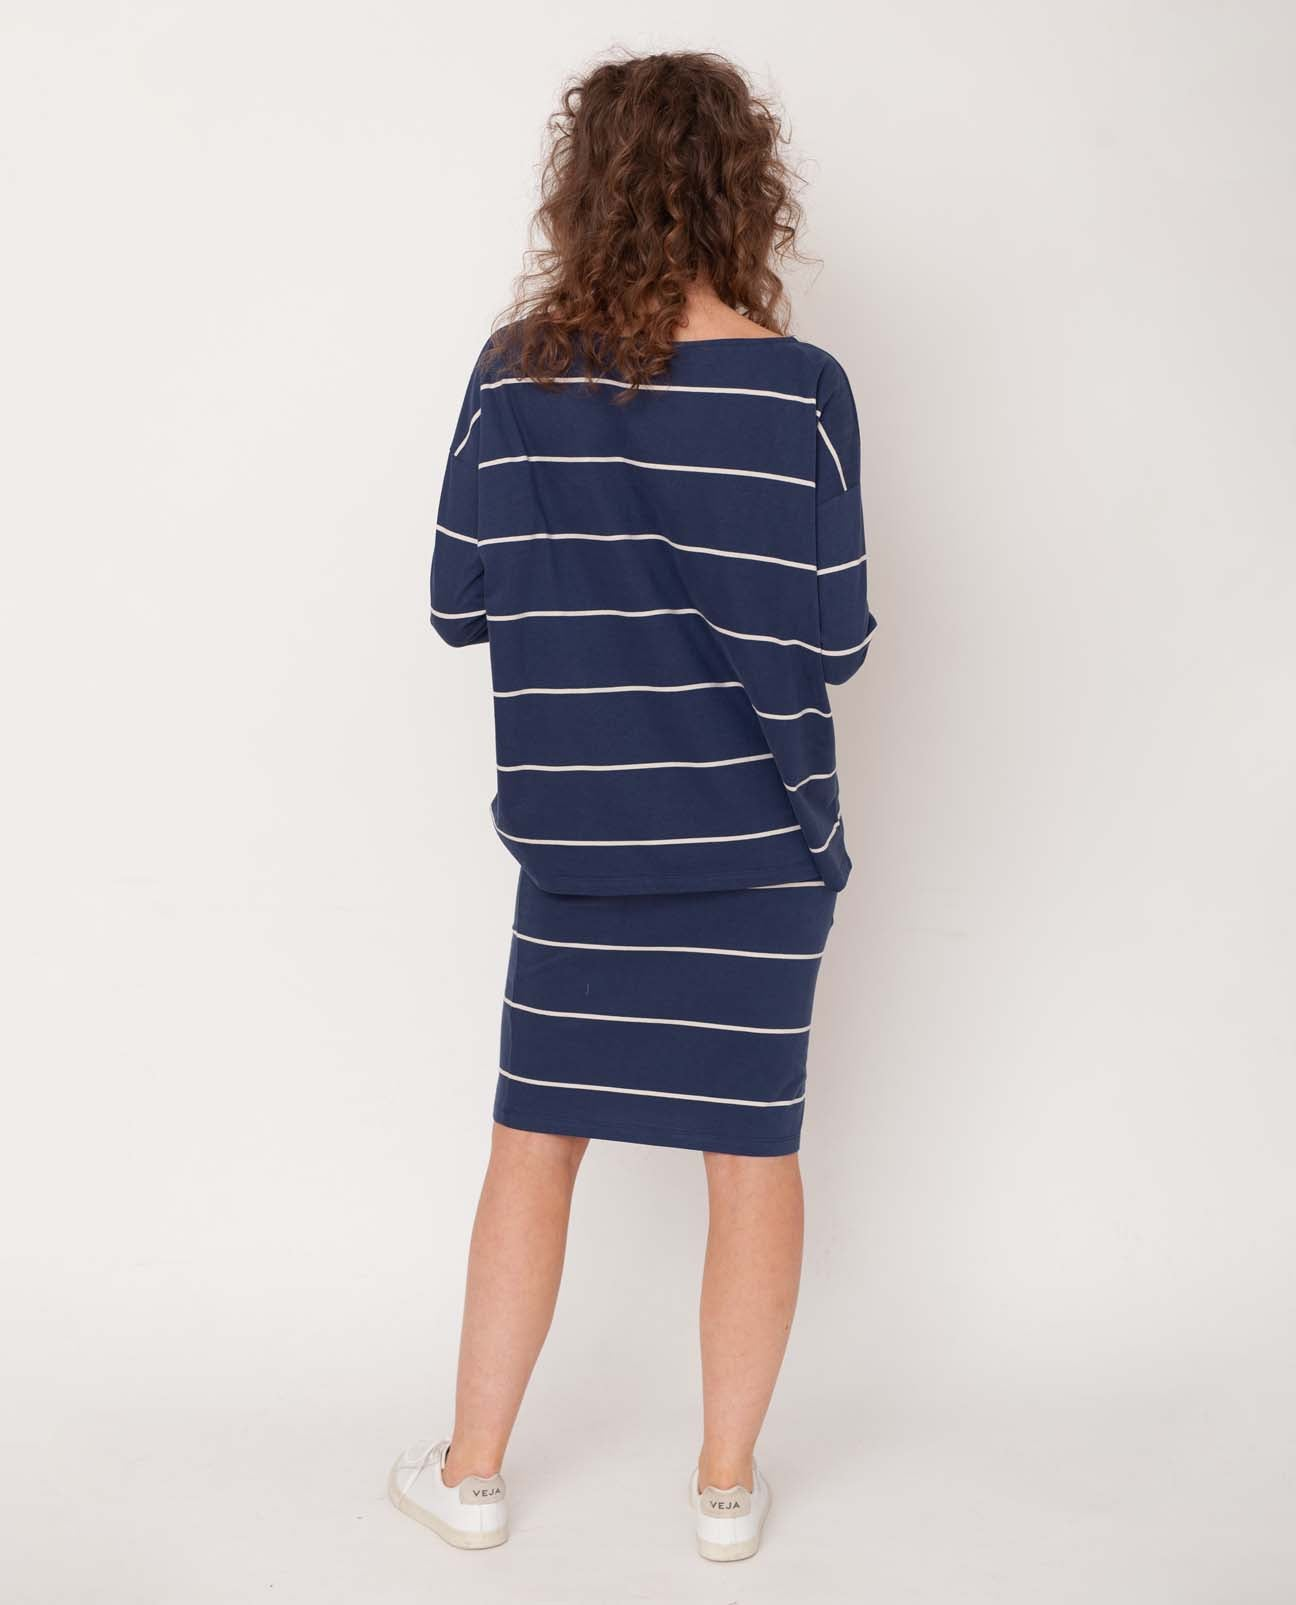 Addison-Sue Organic Cotton Skirt In Midnight & Natural